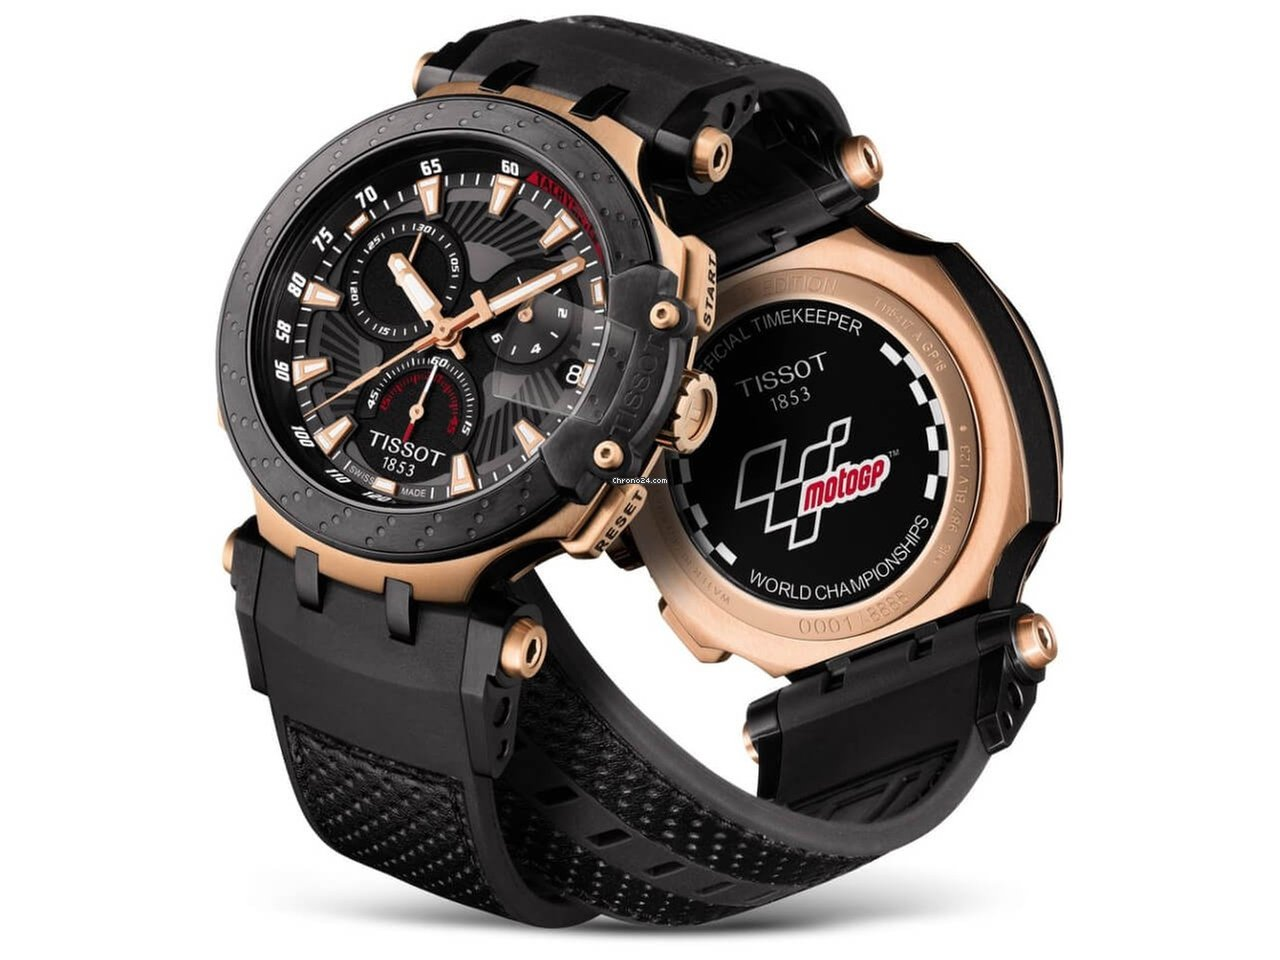 tissot t race motogp 2018 chronograph limited edition quarz vendre pour 720 par un trusted. Black Bedroom Furniture Sets. Home Design Ideas